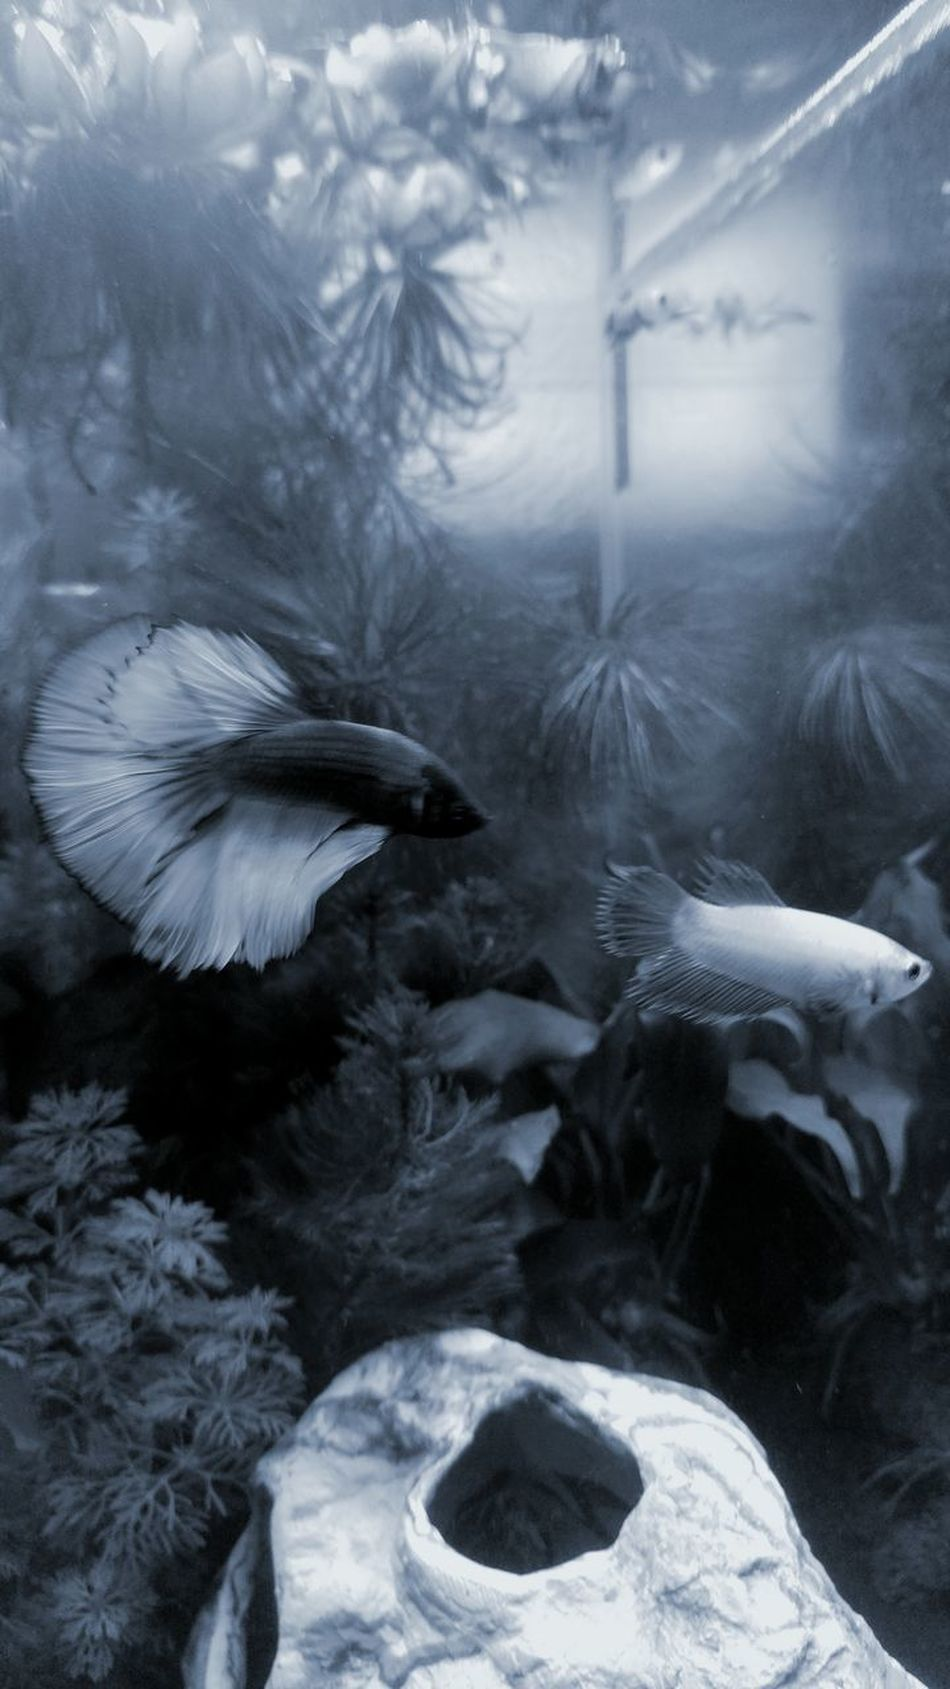 Underwater Nature Swimming Water Beauty In Nature Animal No People Bettasplendens Pairs Beauty In Nature Aquarium Life EyeEmNewHere Fighting Fish Underwater World Aquarium Pets Swimming Fish Animal Themes